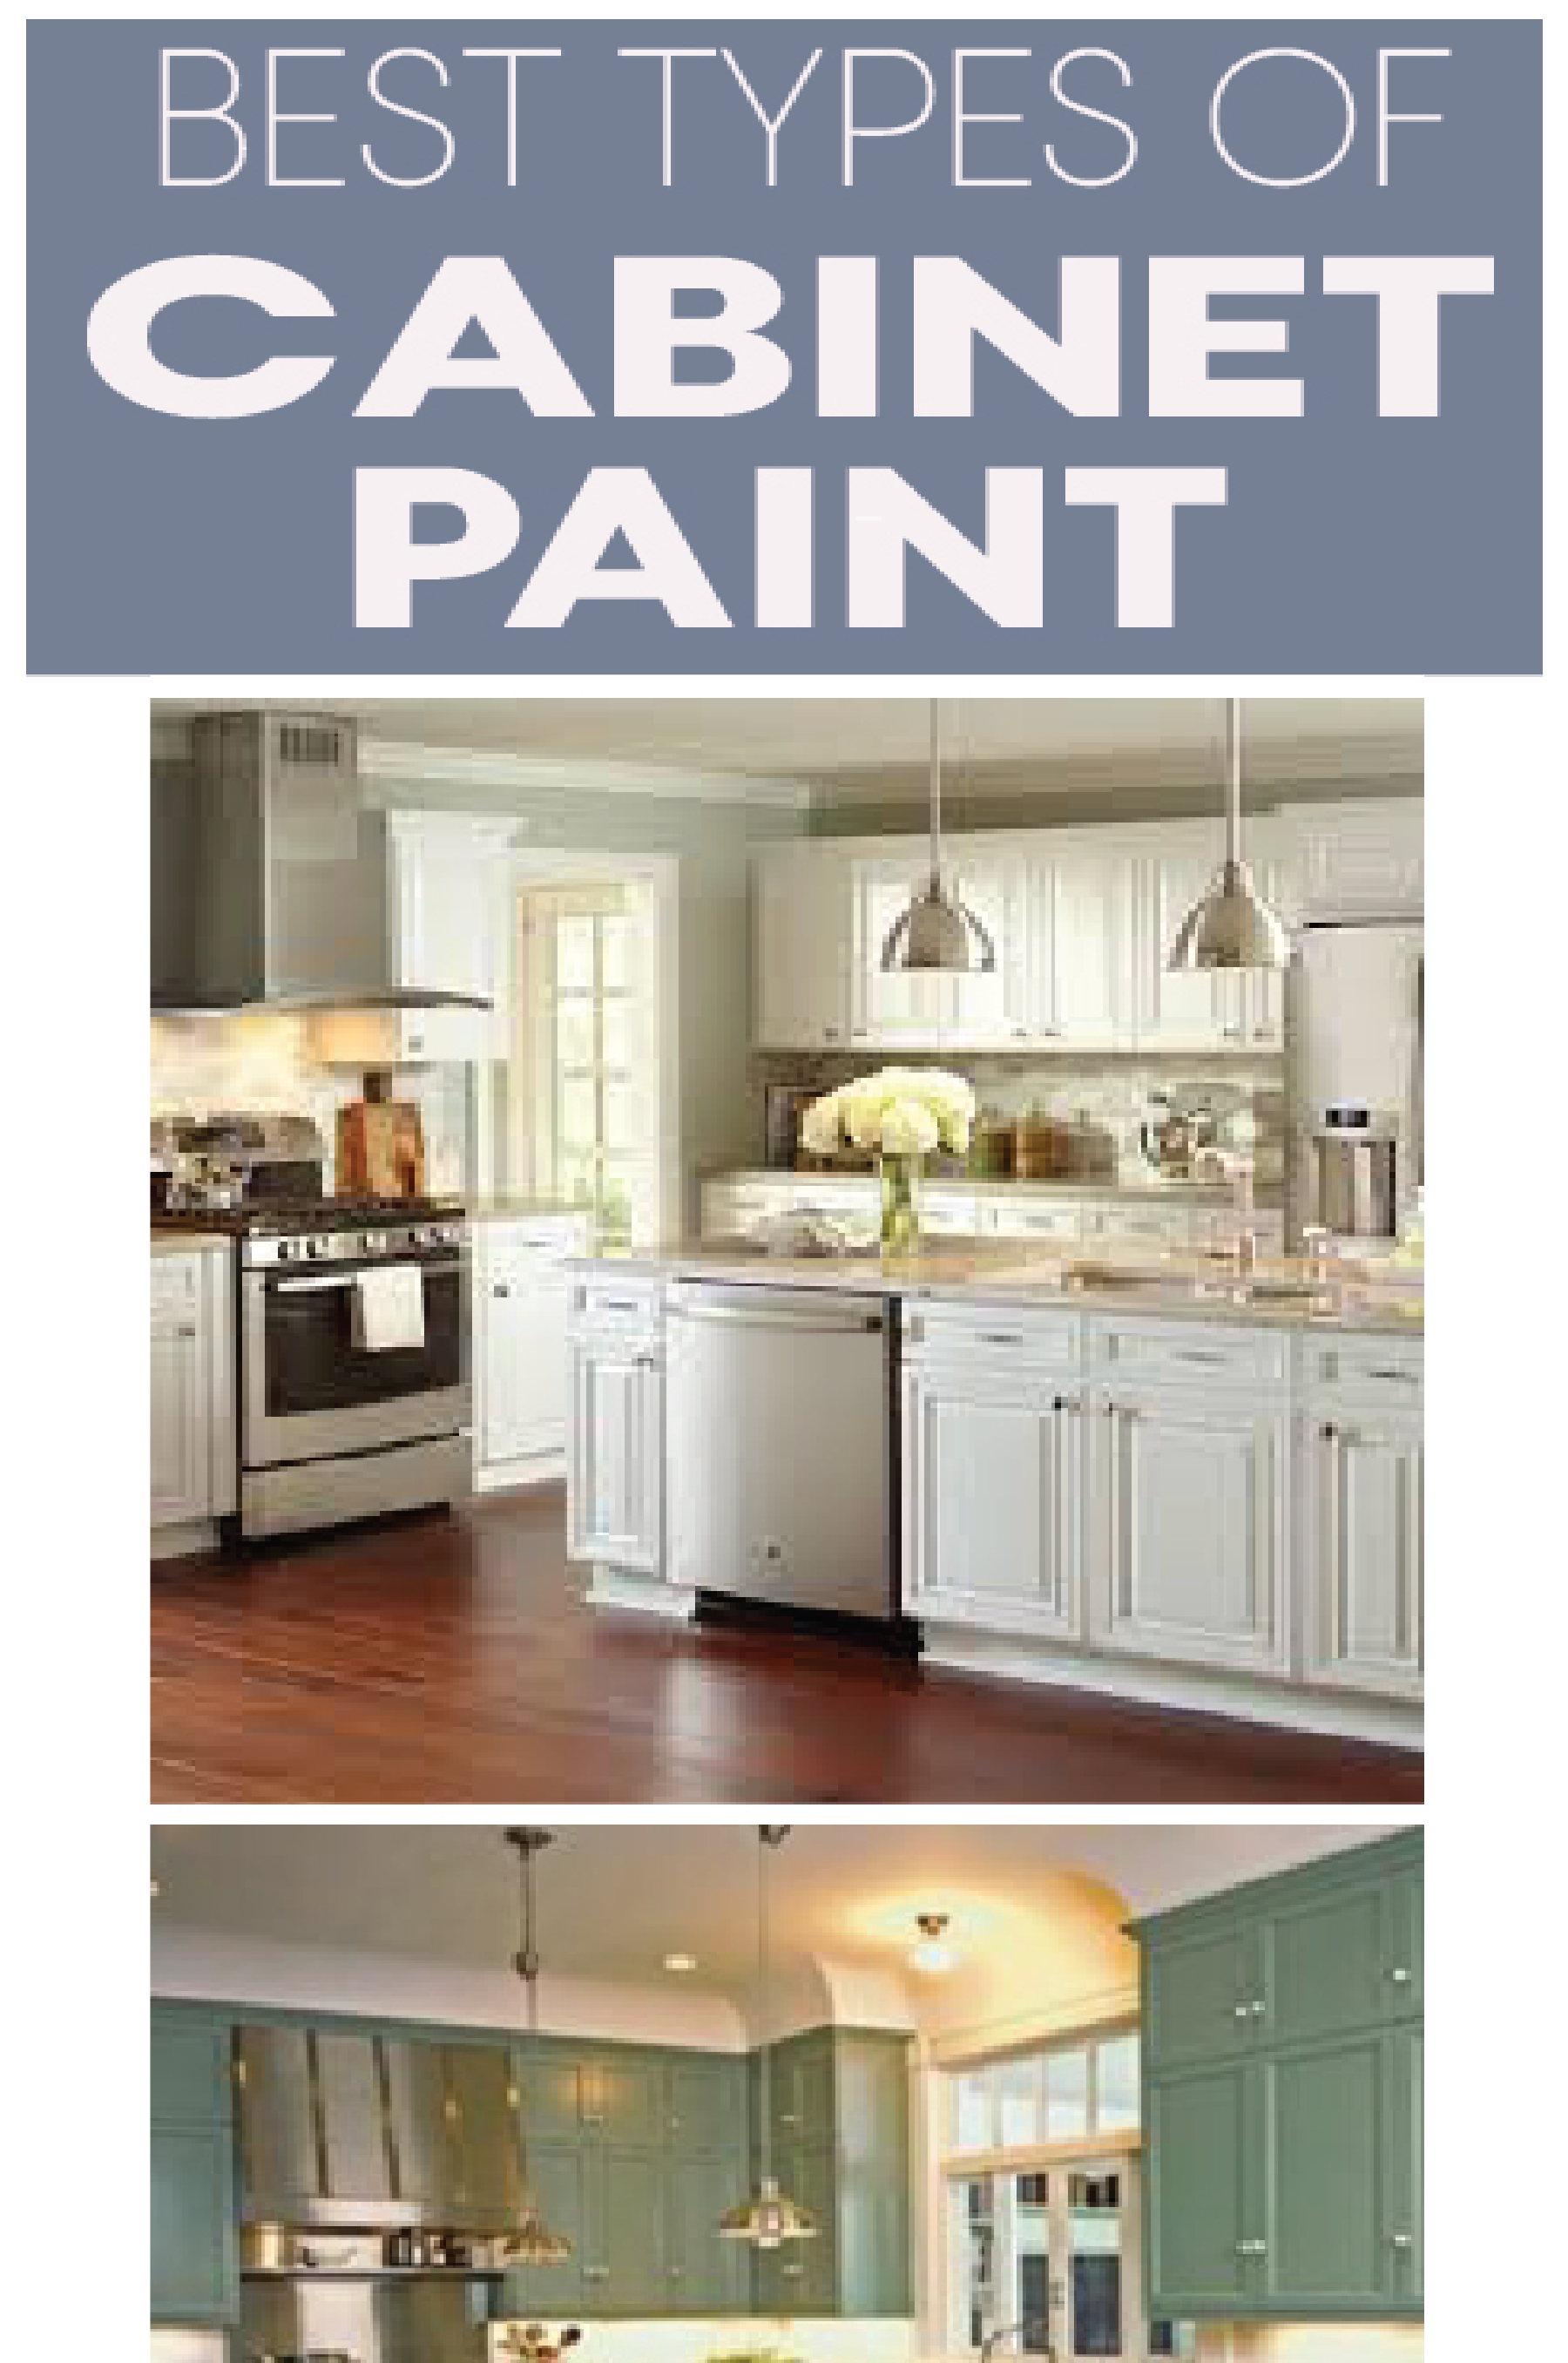 kitchen furniture cabinets. Best Types Of Paint For Your Kitchen Cabinets Explained So You Can Pick The Right One Furniture 0